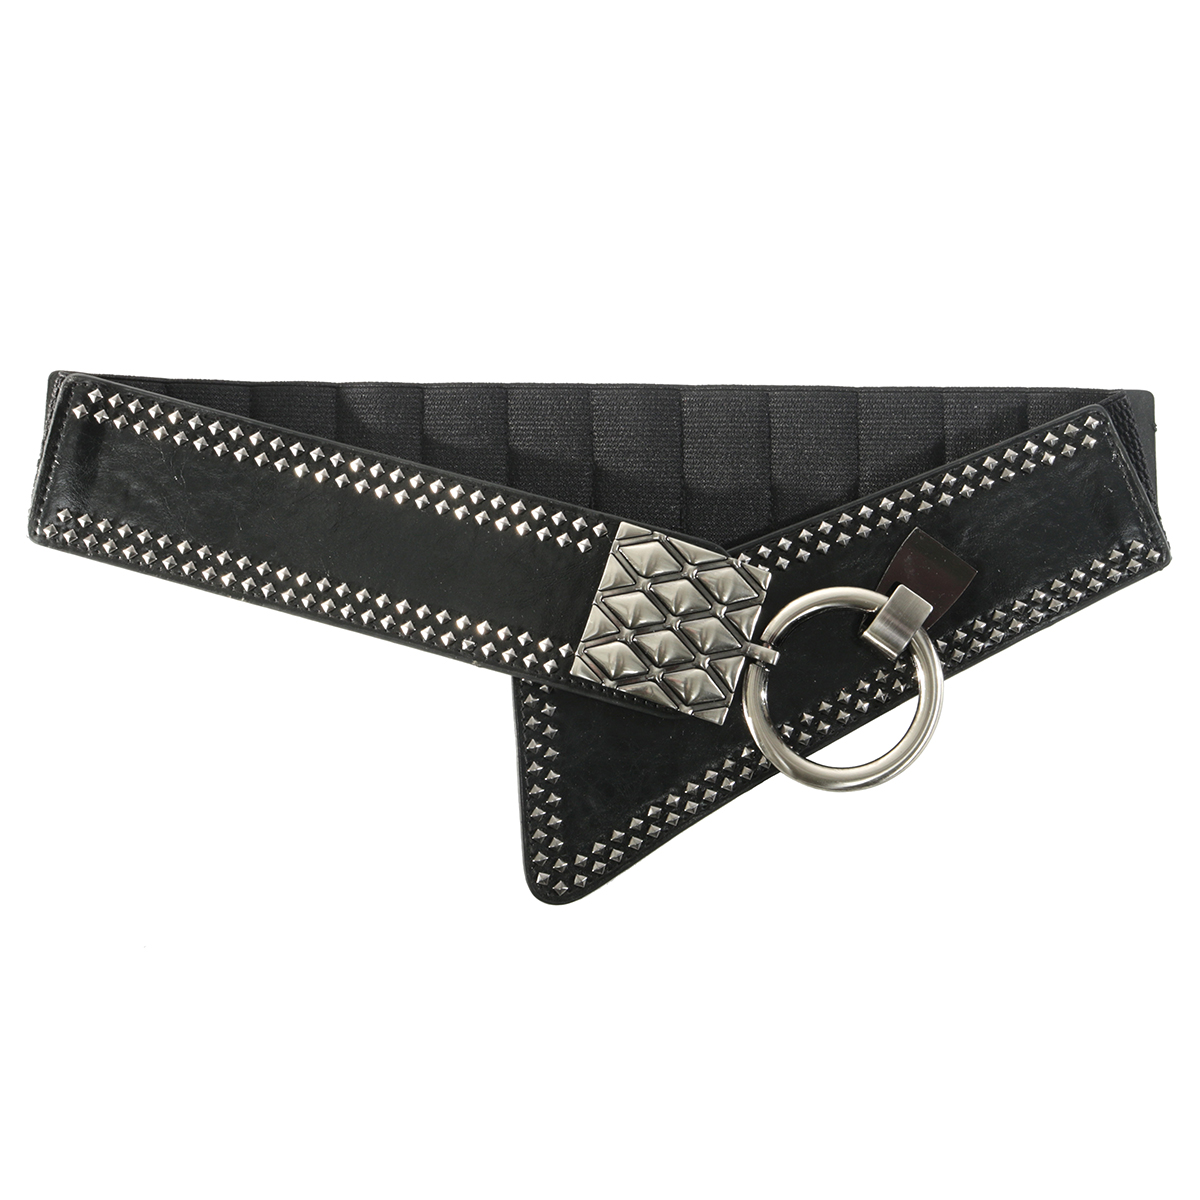 Black Rivet Belt 70sp